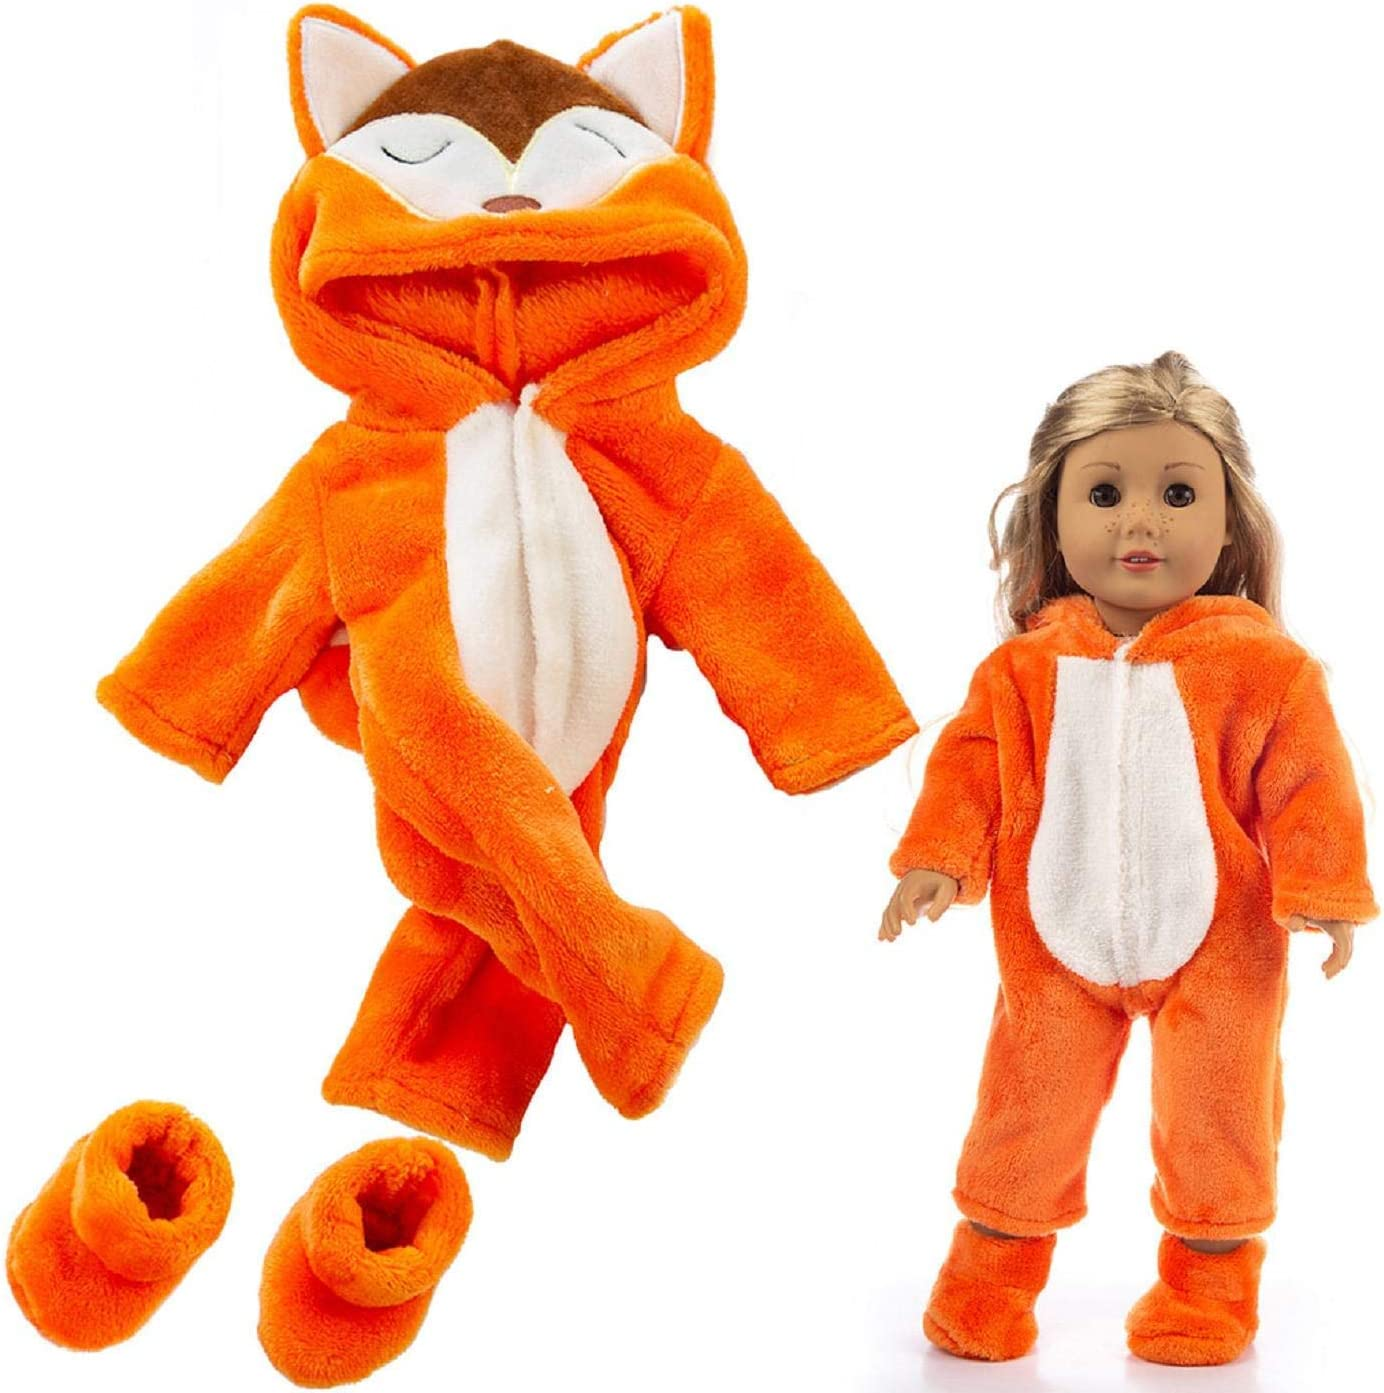 Cute Doll Clothes Animal Jumpsuit Doll Clothes Coat and Trousers Outfit Accessories Set for 18 Inch American Girl Doll Accessories Girl Gift Toy